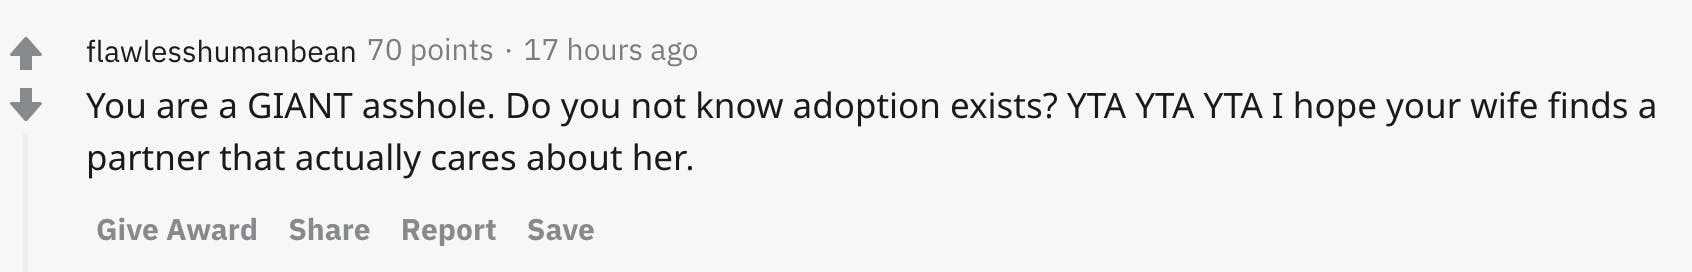 You are a GIANT asshole. Do you not know adoption exists? YTA YTA YTA I hope your wife finds a partner that actually cares about her.